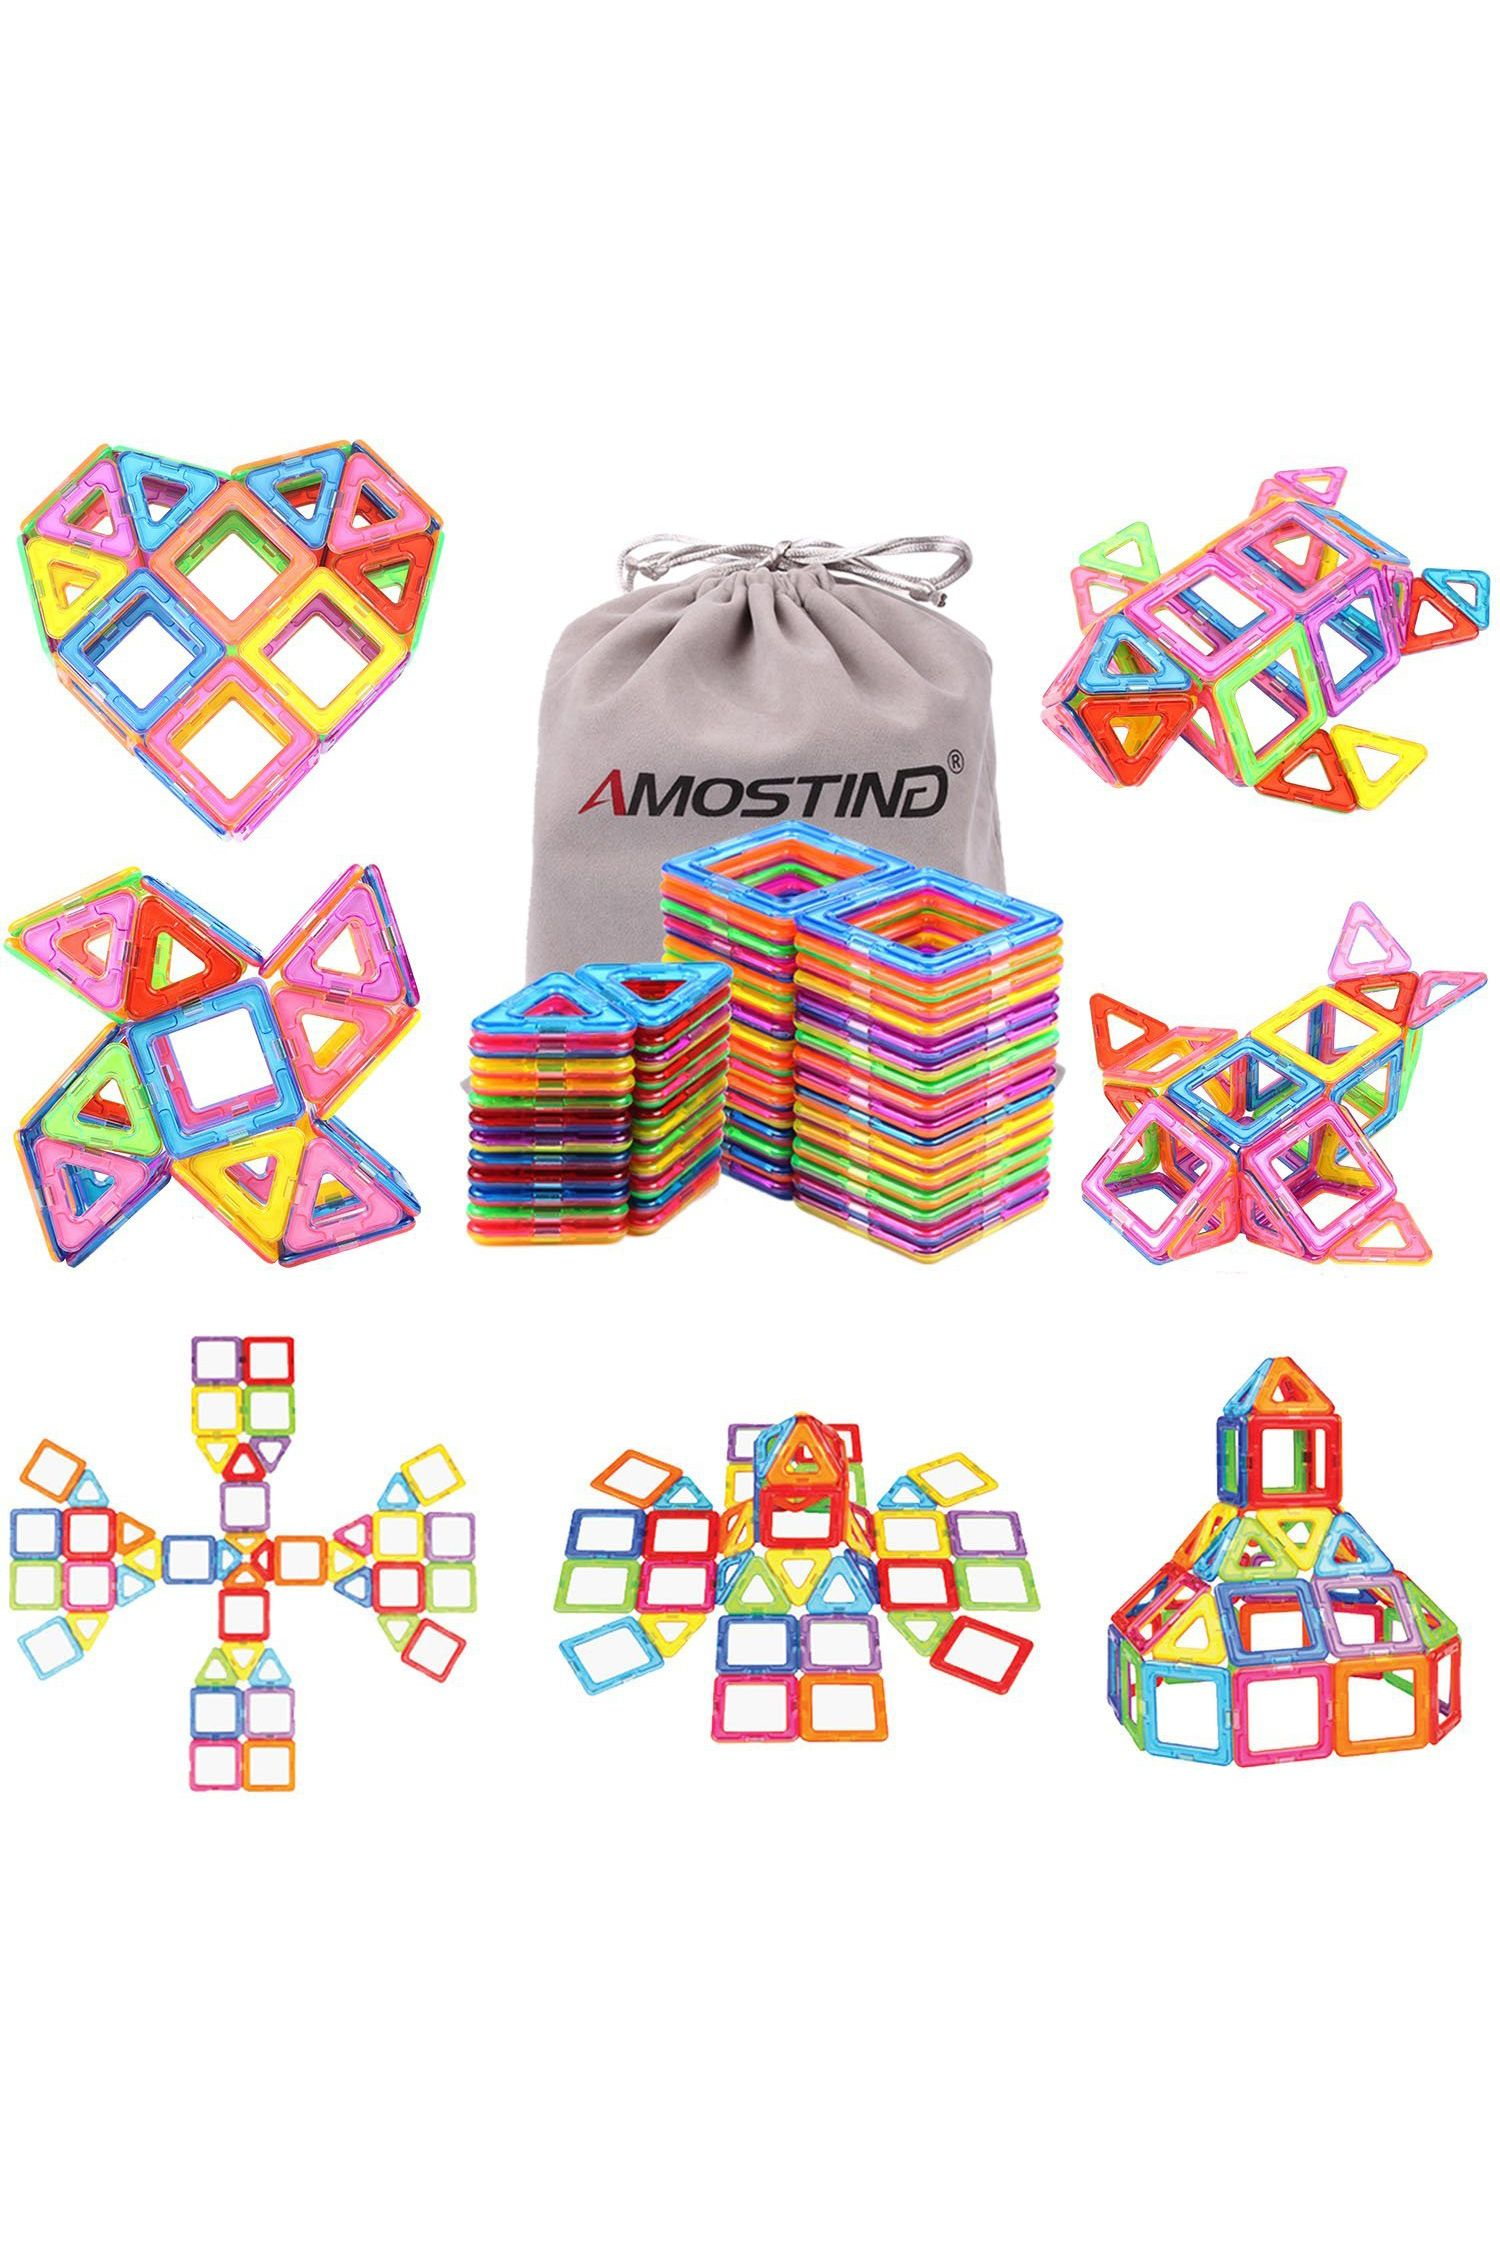 41 Best Christmas Gifts for Kids - 2018 Holiday Gift Ideas for ...